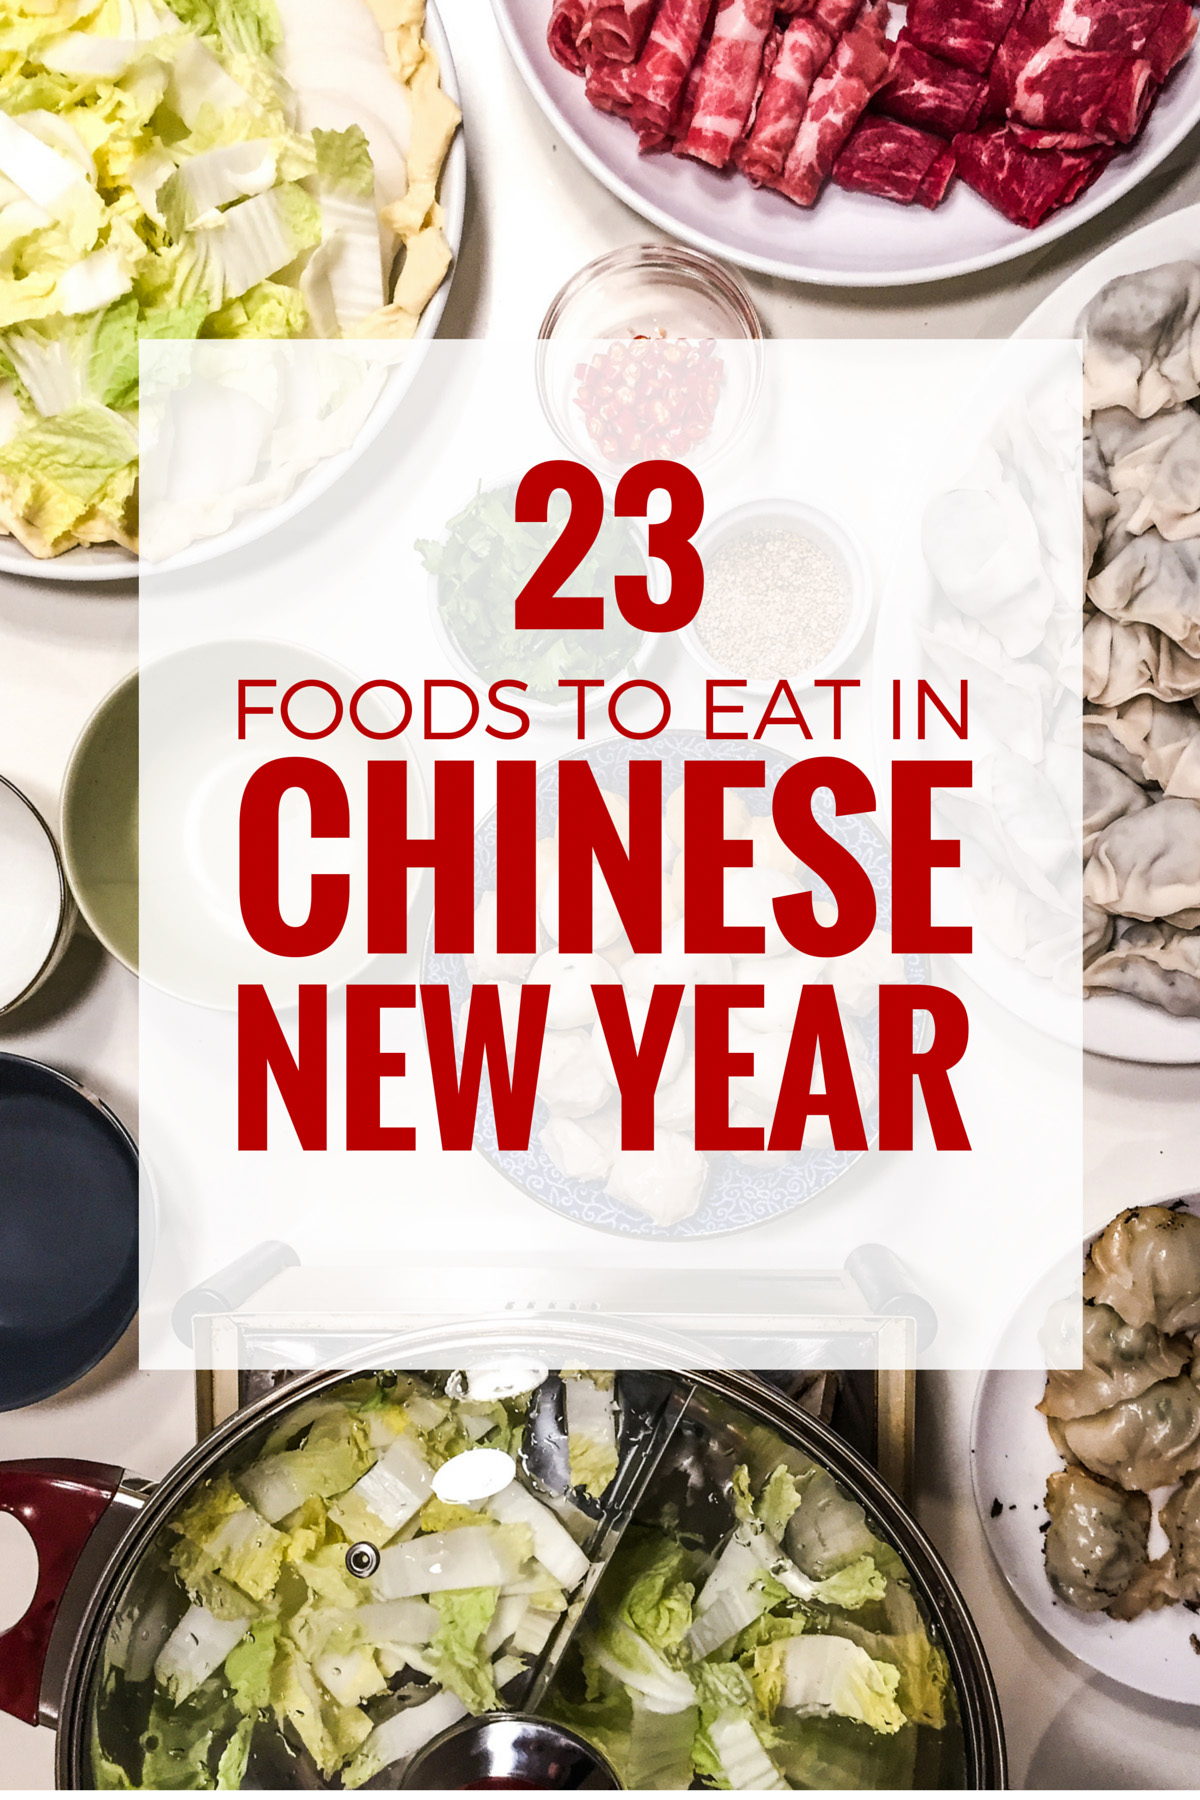 Chinese New Year Food: Discover 23 foods that you can't miss during Chinese New Year.